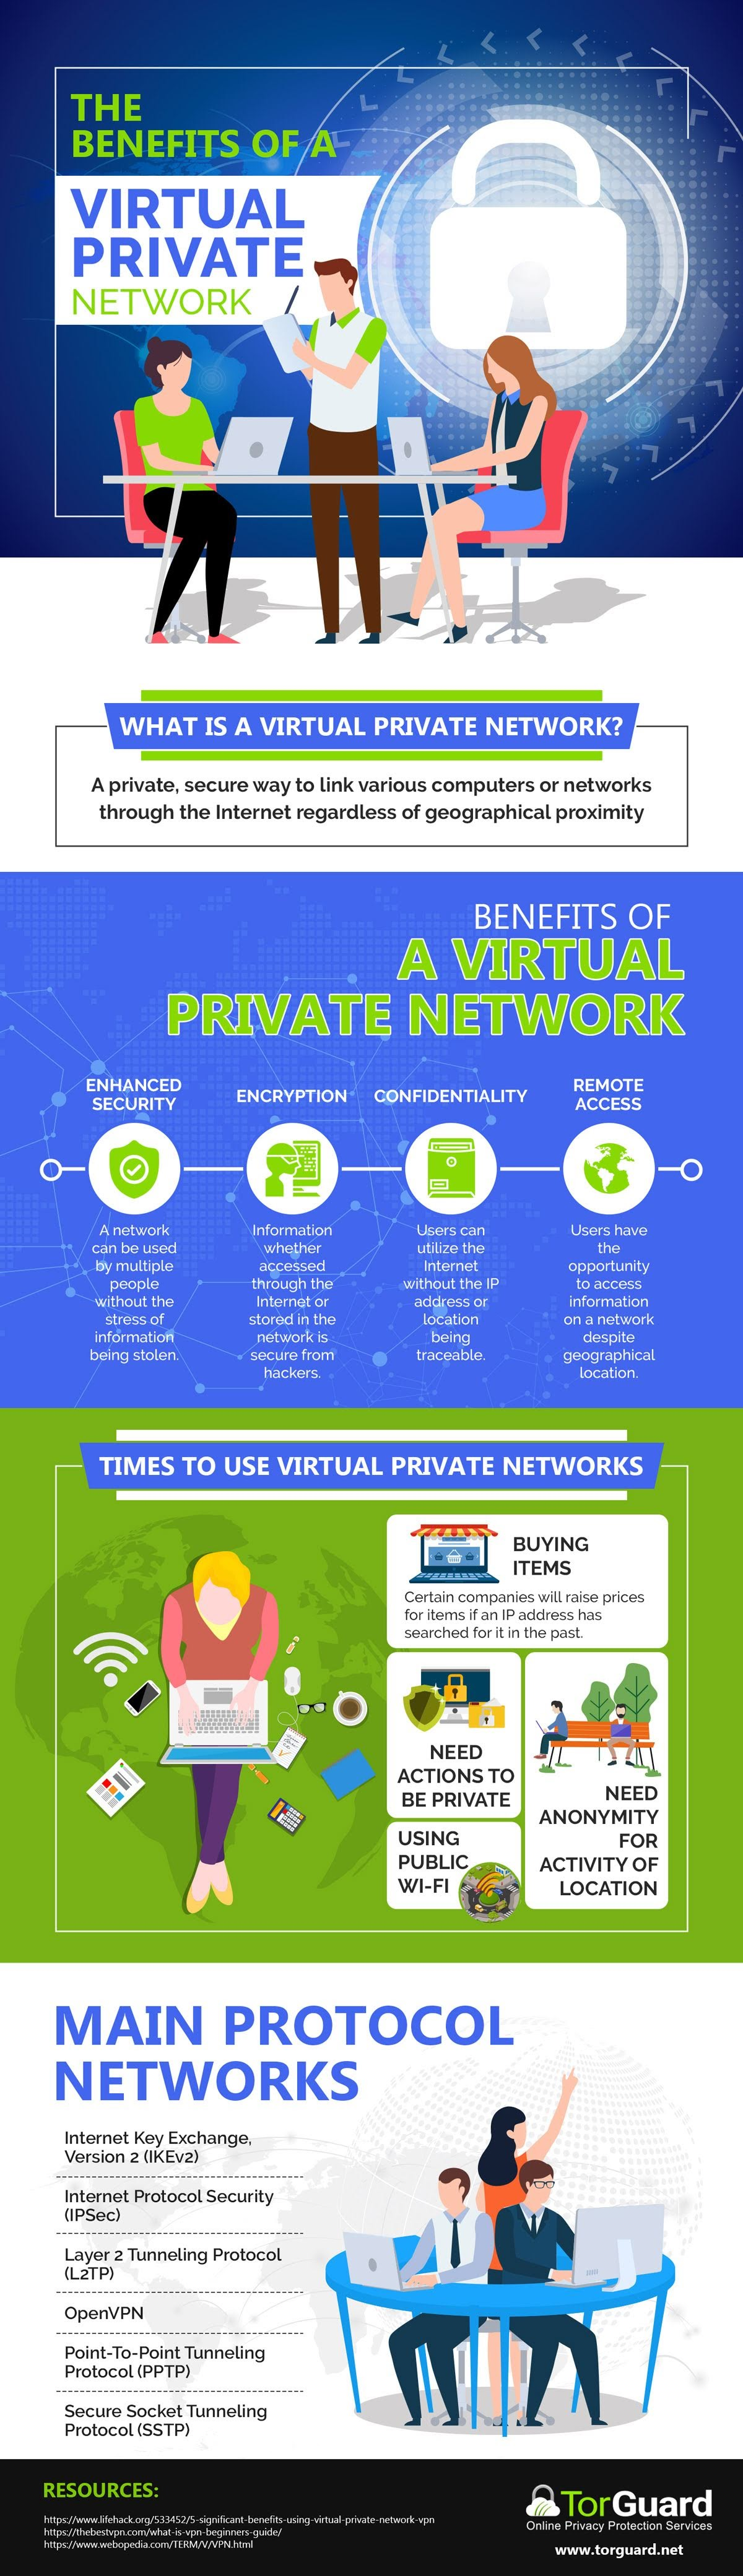 Benefits of Using a Virtual Private Network #infographic